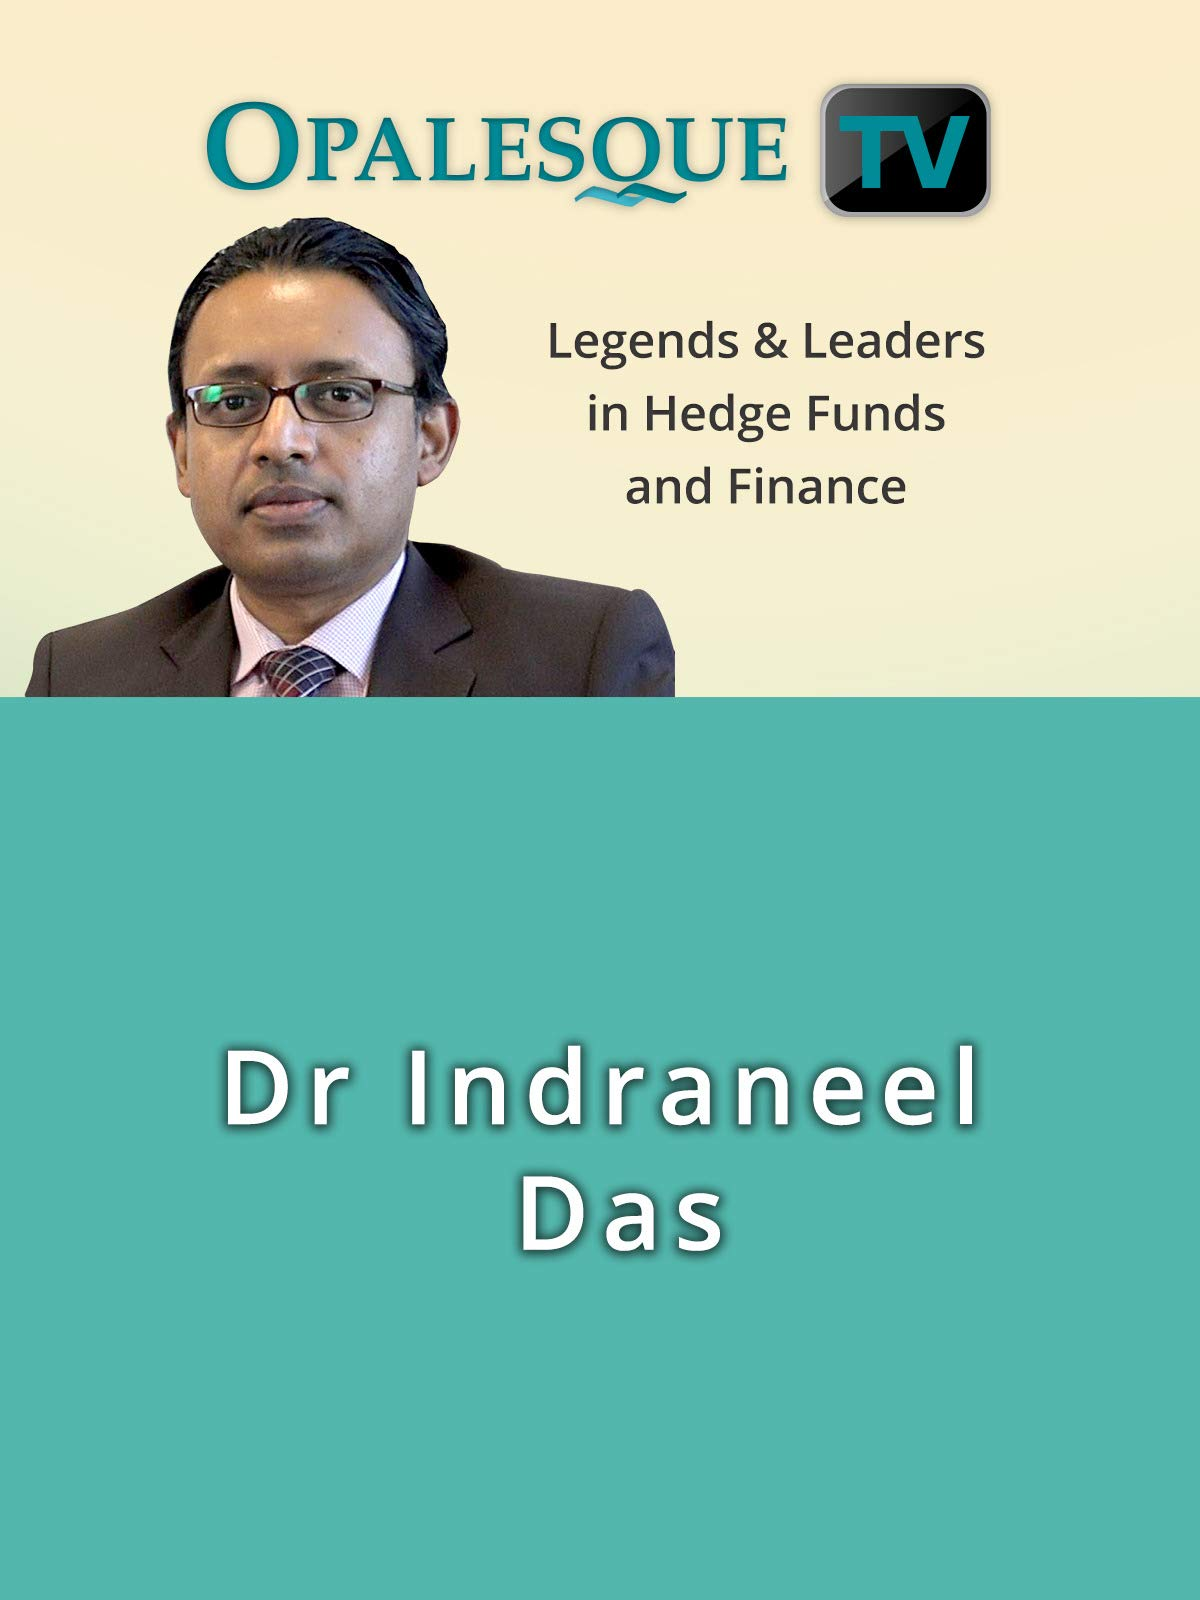 Legends & Leaders in Hedge Funds and Finance - Dr Indraneel Das